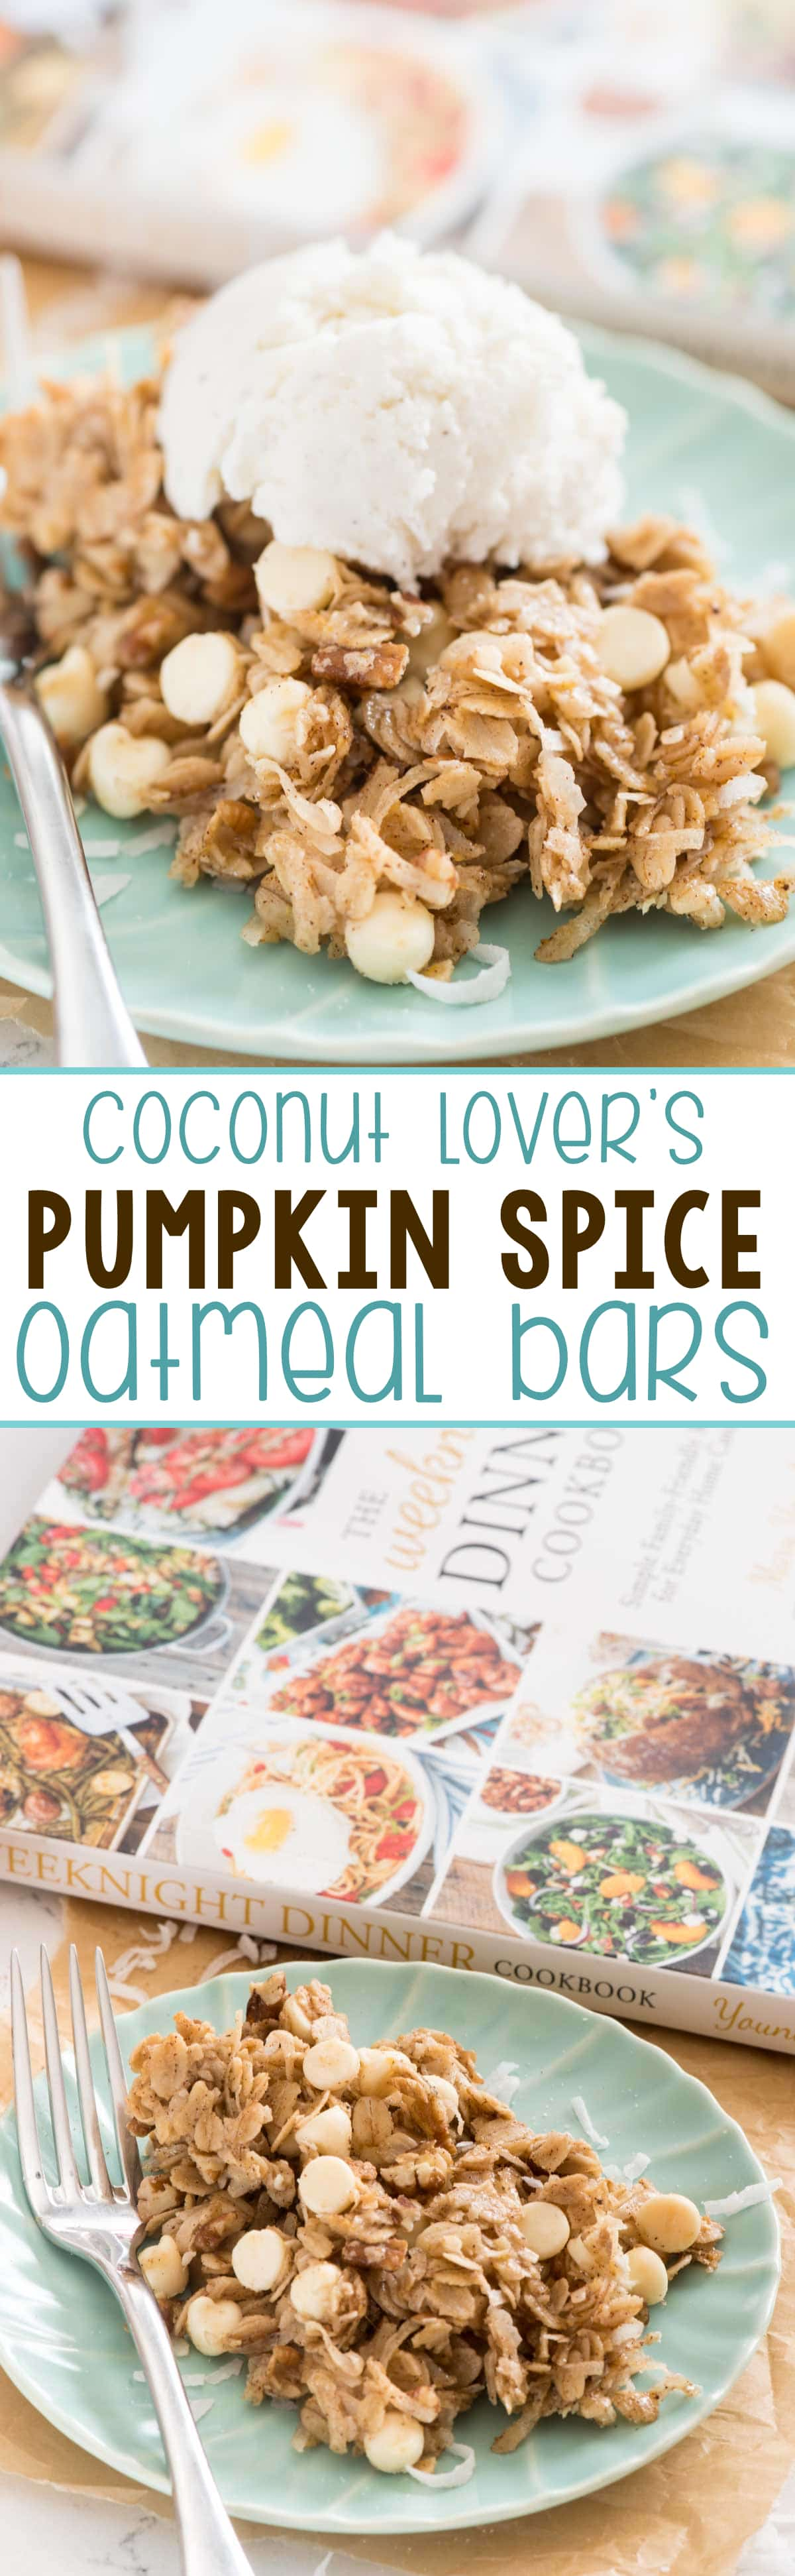 Easy Coconut Lover's Pumpkin Spice Oatmeal Bars - this simple dessert recipe is perfect with ice cream! It's got no flour and is FULL of pumpkin pie spice!